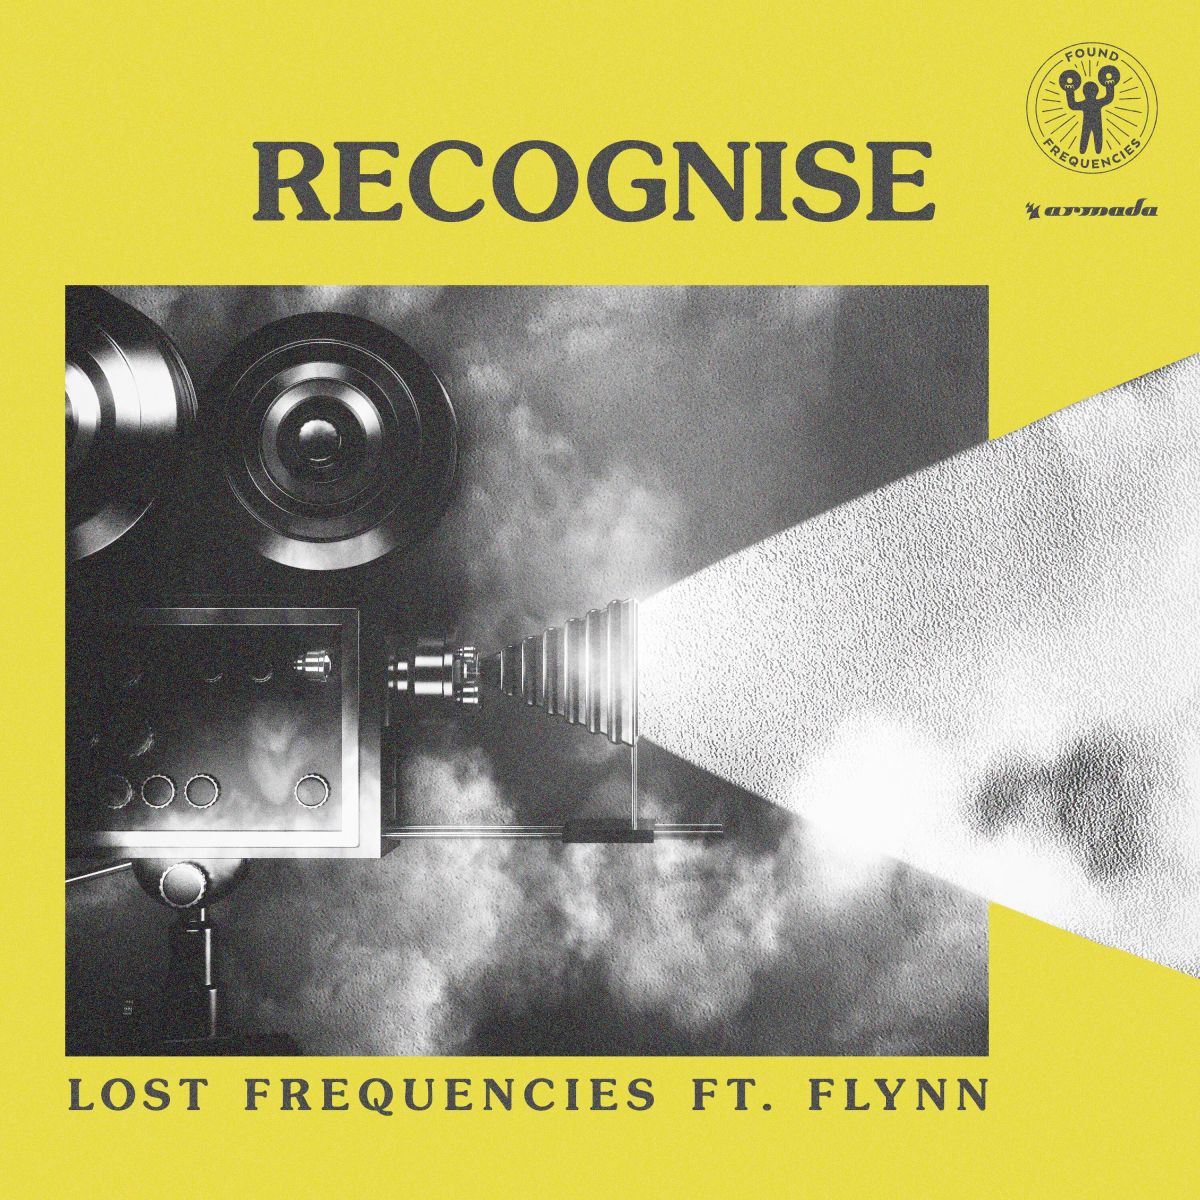 Artwork Recognise Lost Frequencies